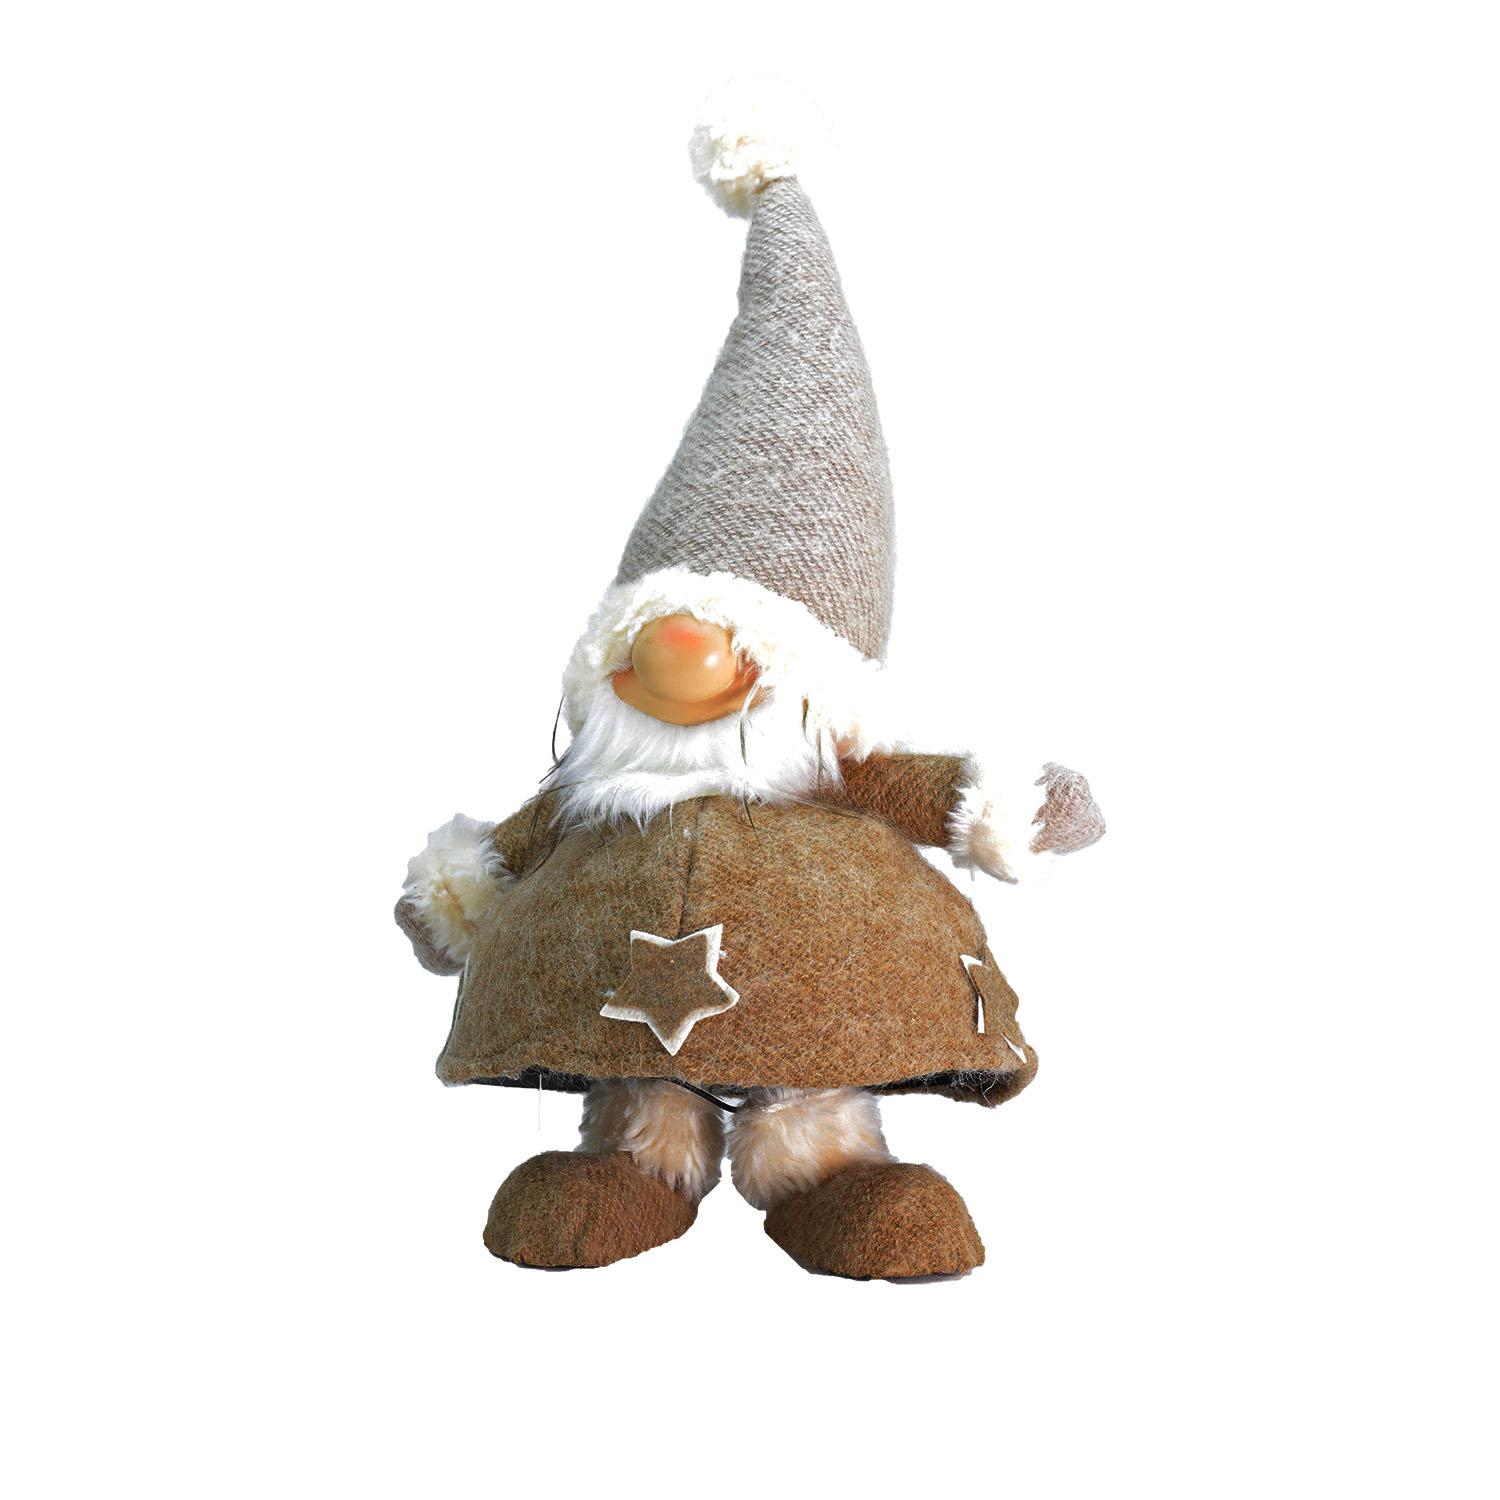 ''18'''' Plush and Portly Champagne Bobble ACTION Gnome Christmas Tabletop FIGURE''